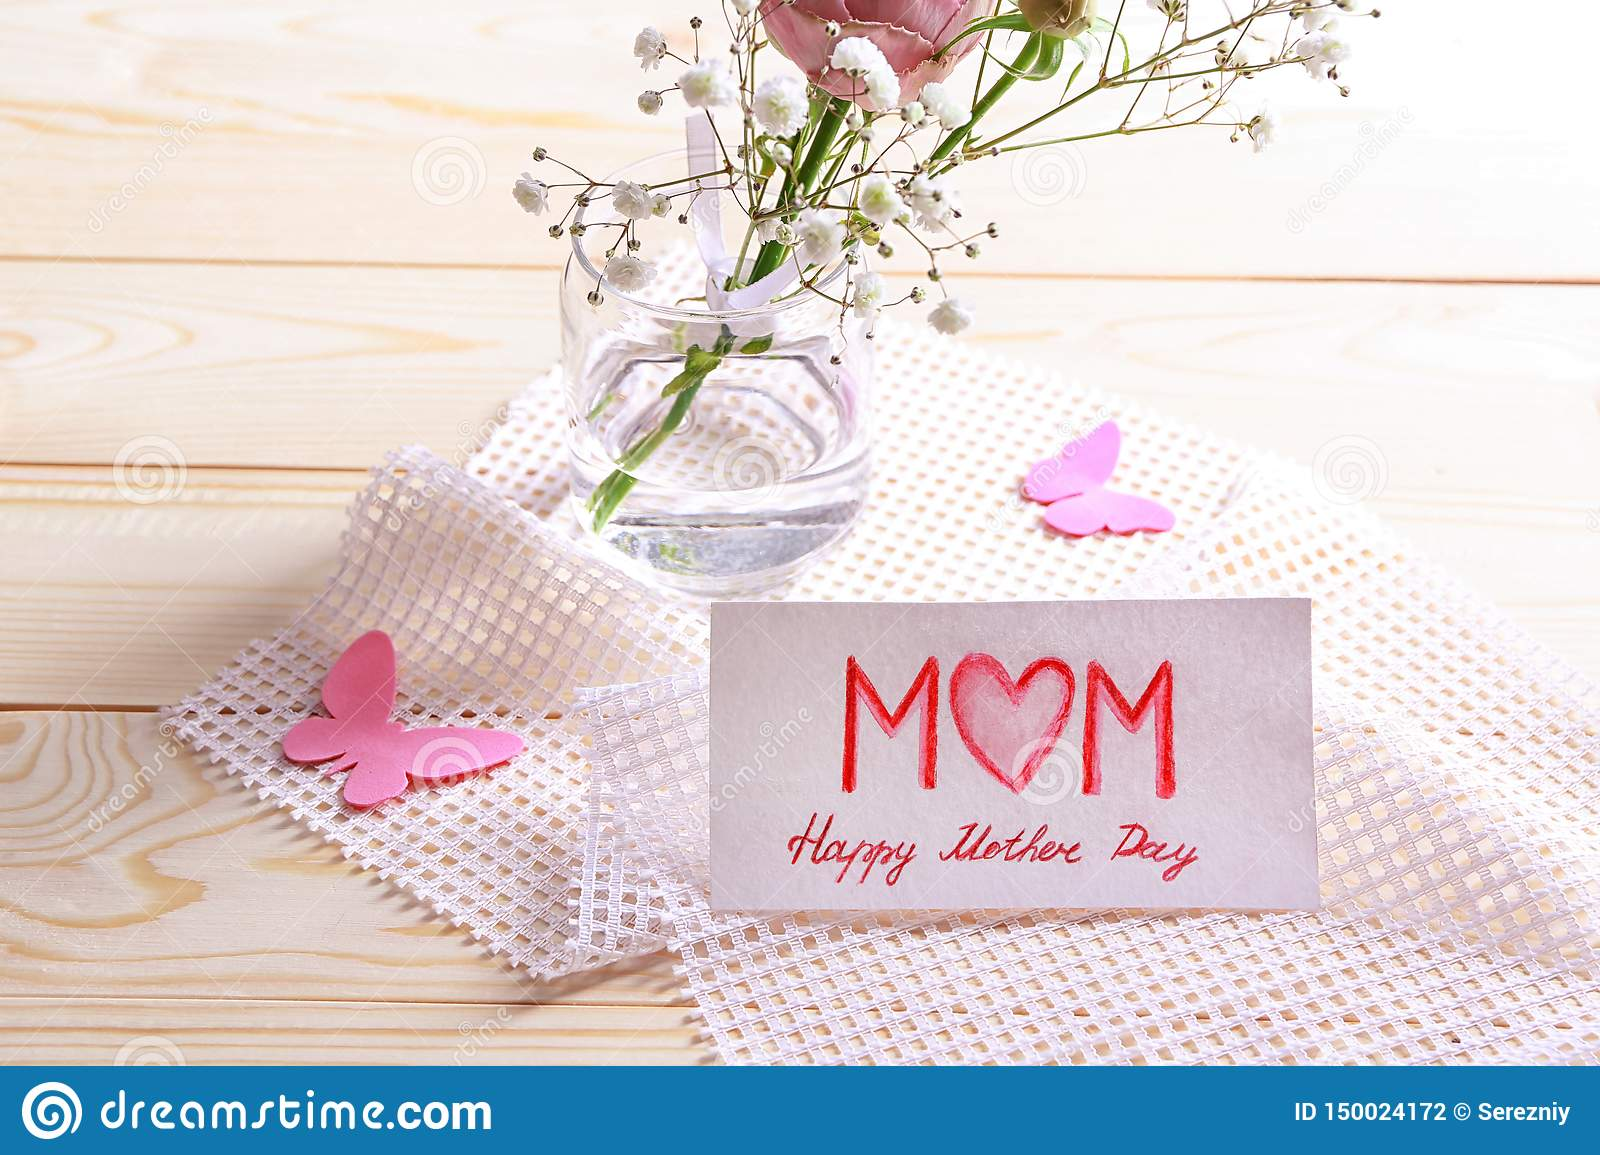 flowers and handmade card for mother s day on wooden table